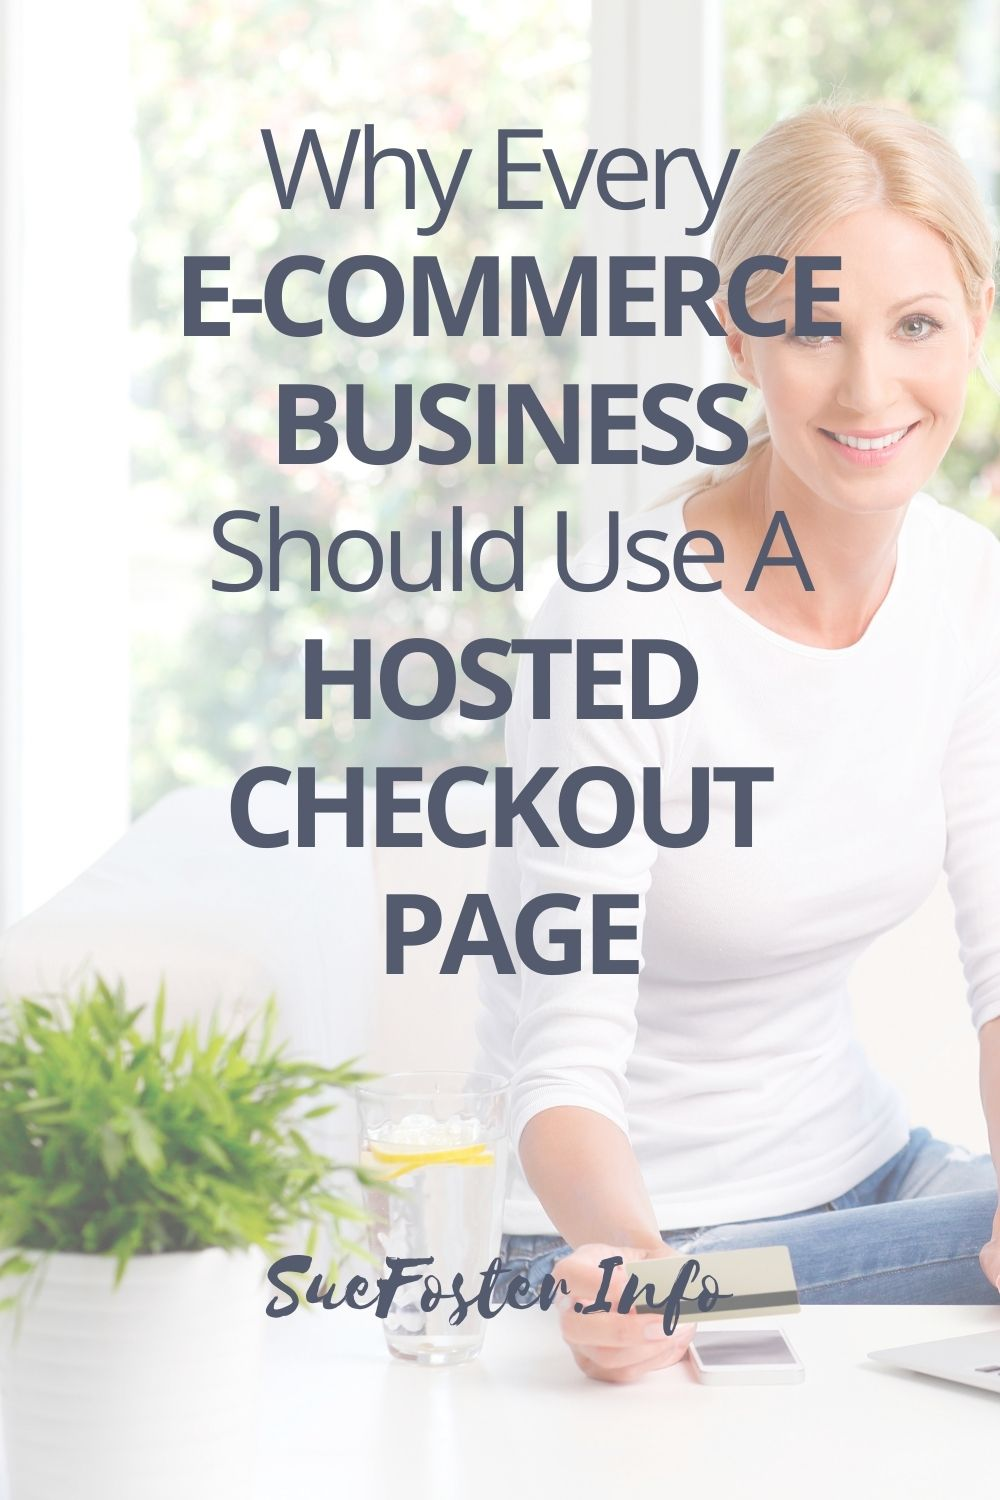 Why every e-commerce business should use a hosted checkout.